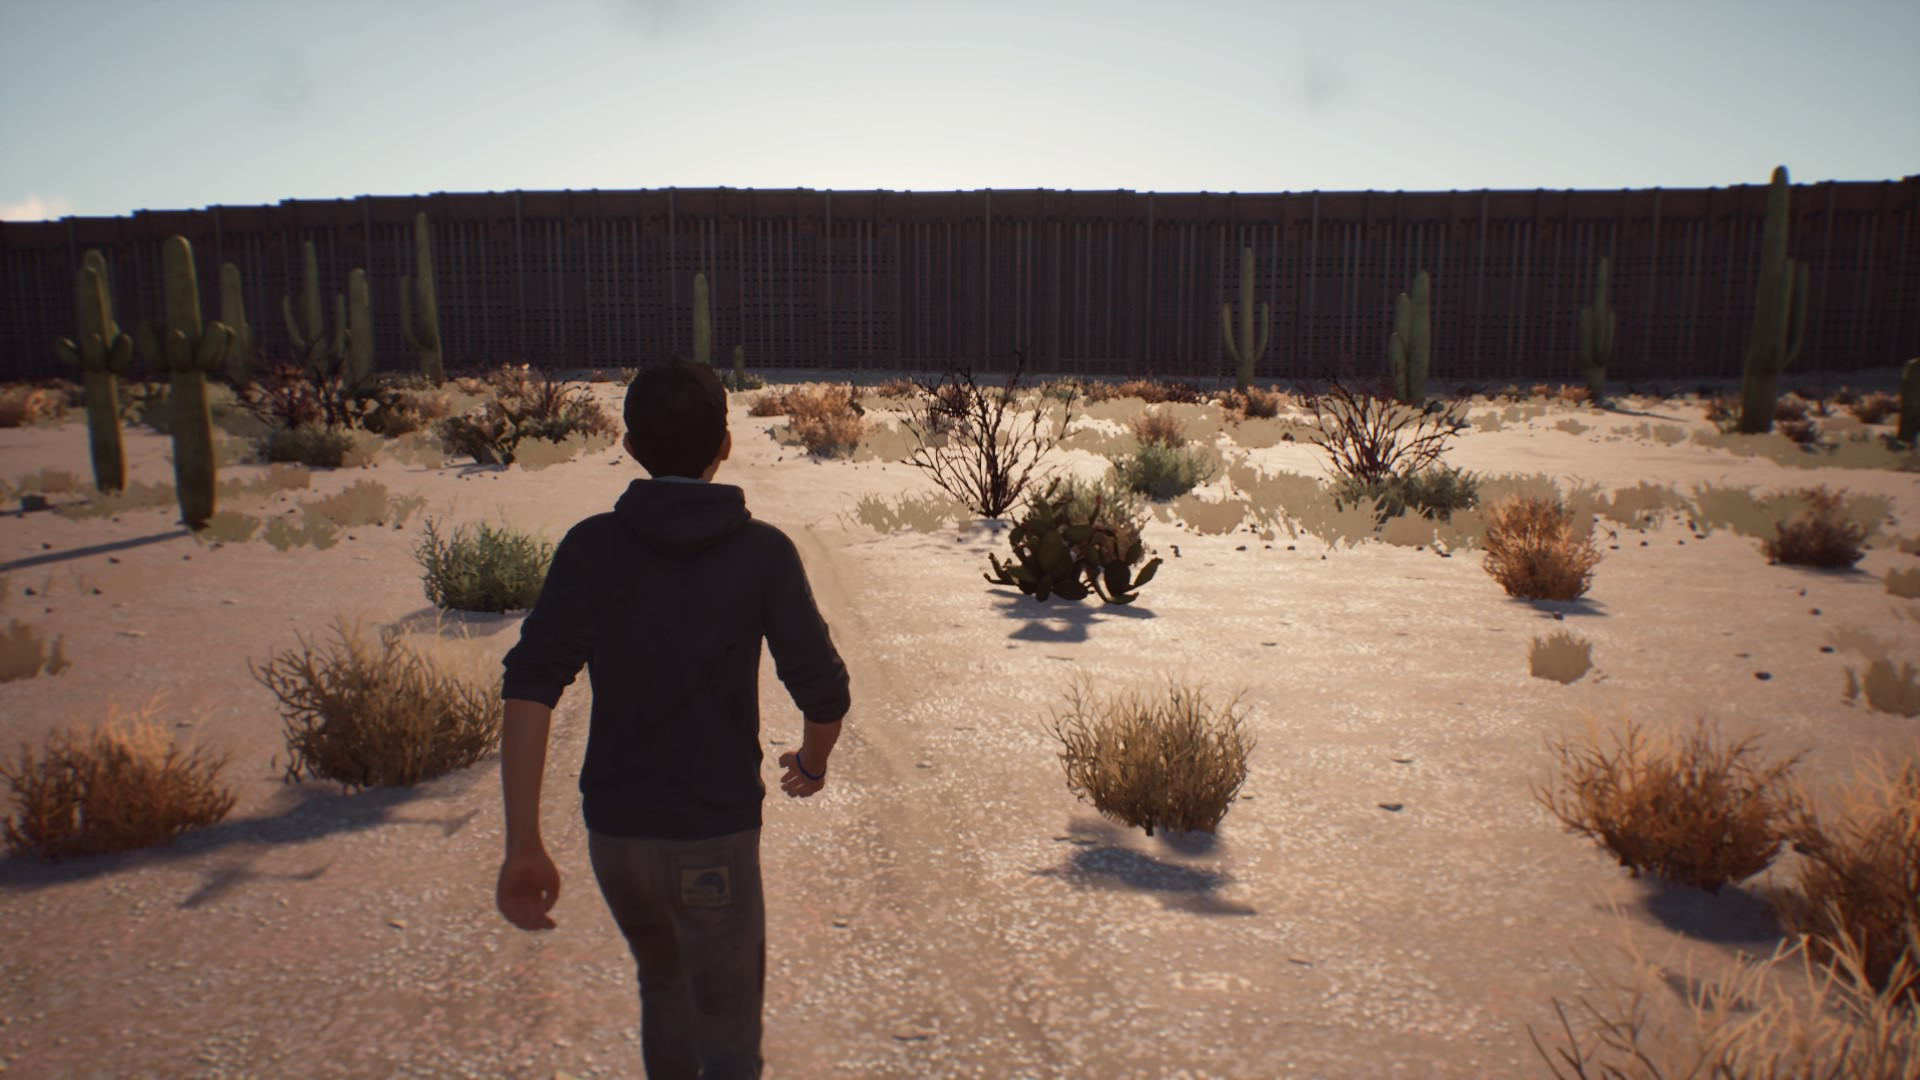 My mom crossed the border in real life. I only cross it in a video game.